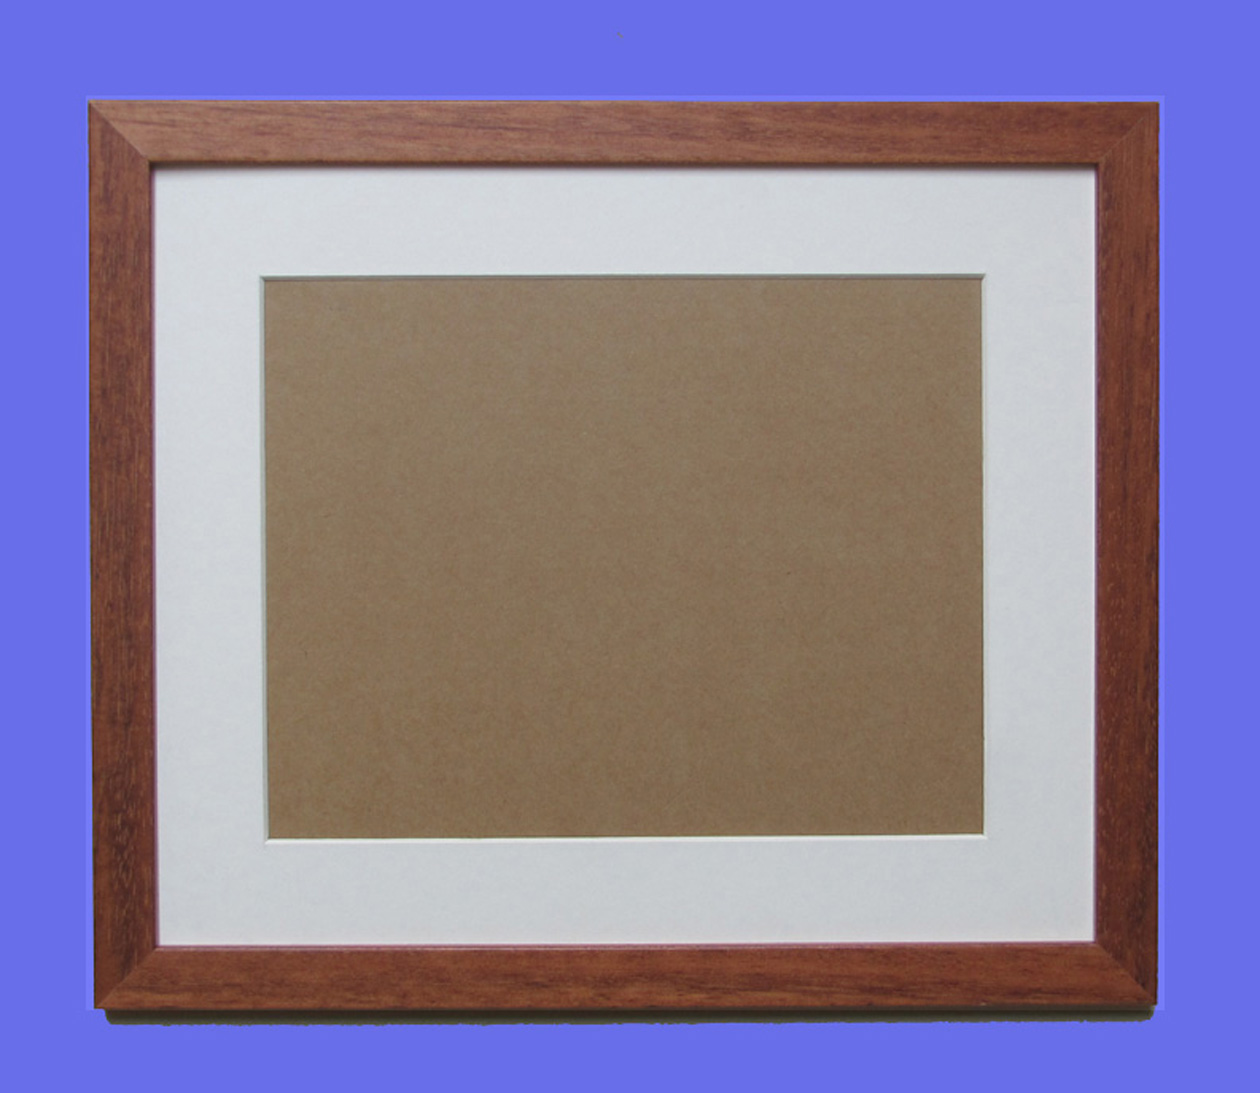 20X14 READY MADE PICTURE FRAMES